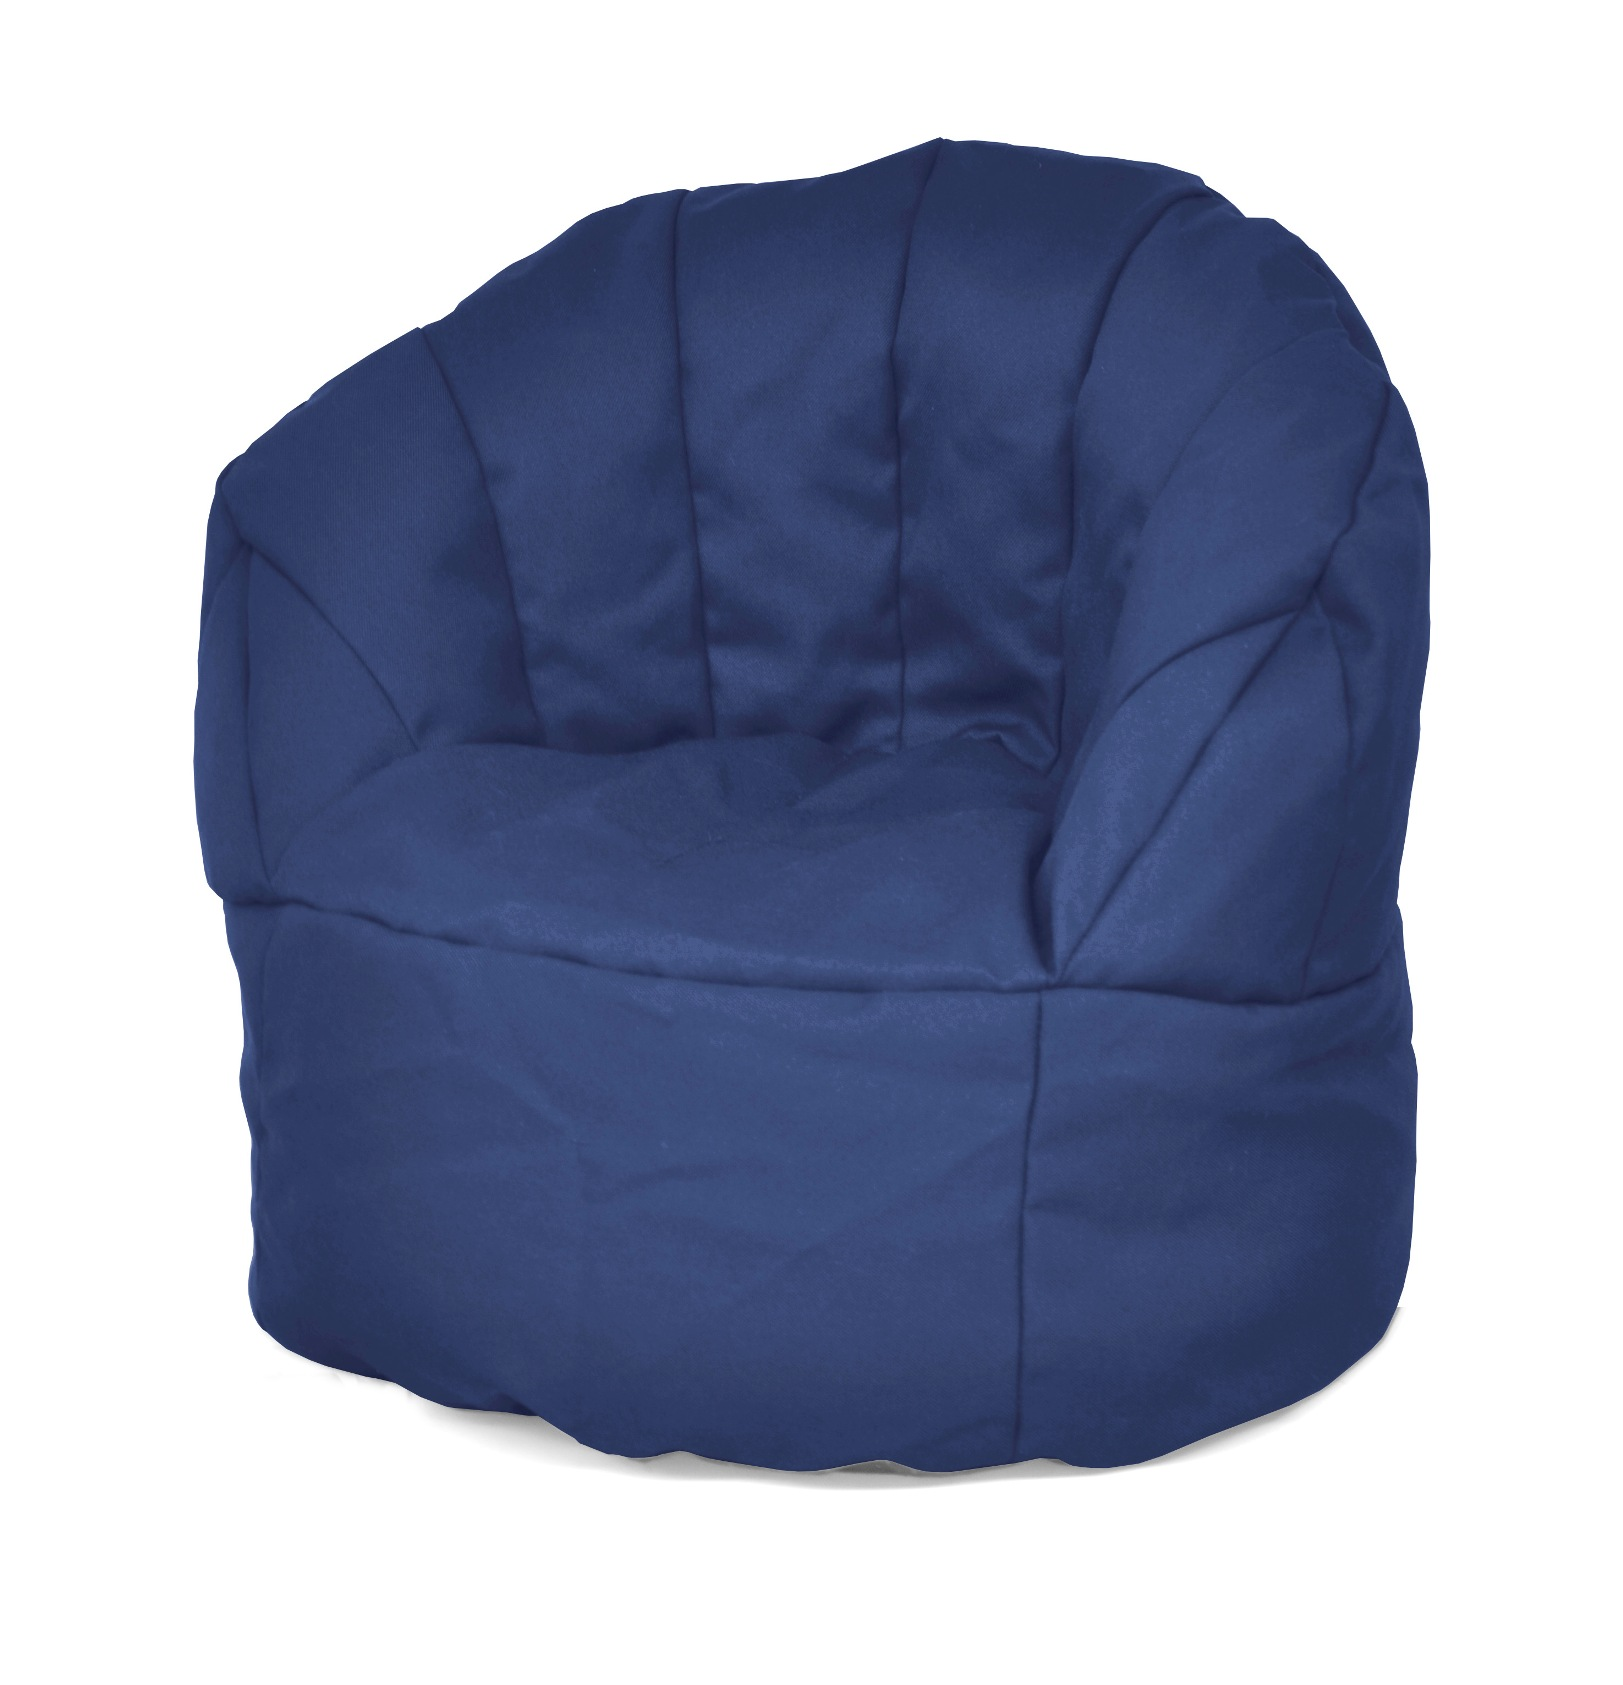 Piper Kids Bean Bag Chair